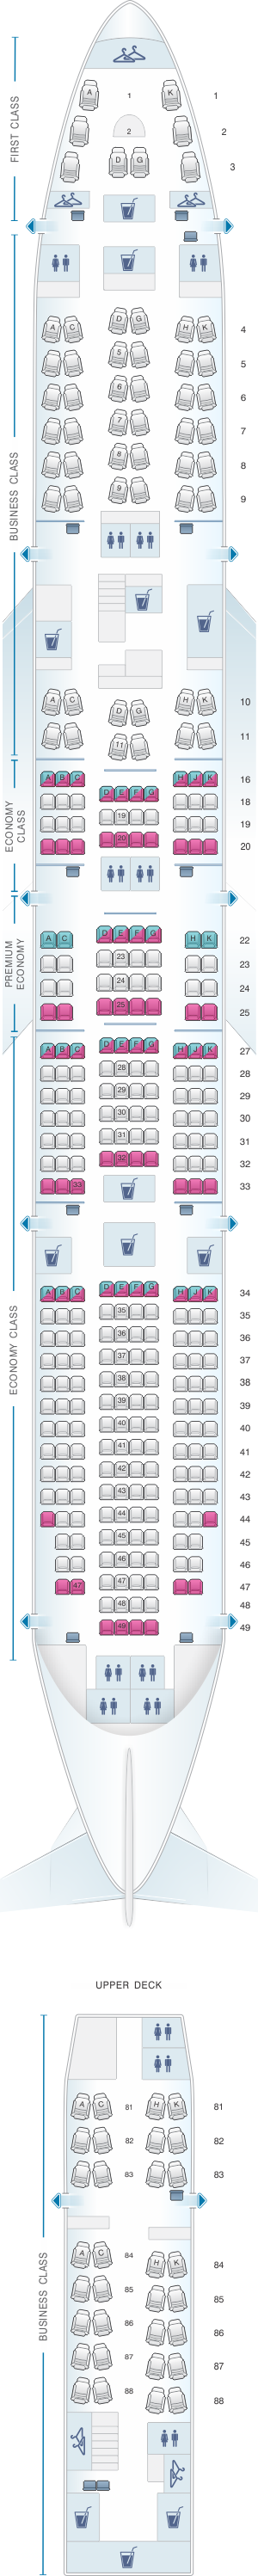 Seat map for Lufthansa Boeing B747-8 364pax